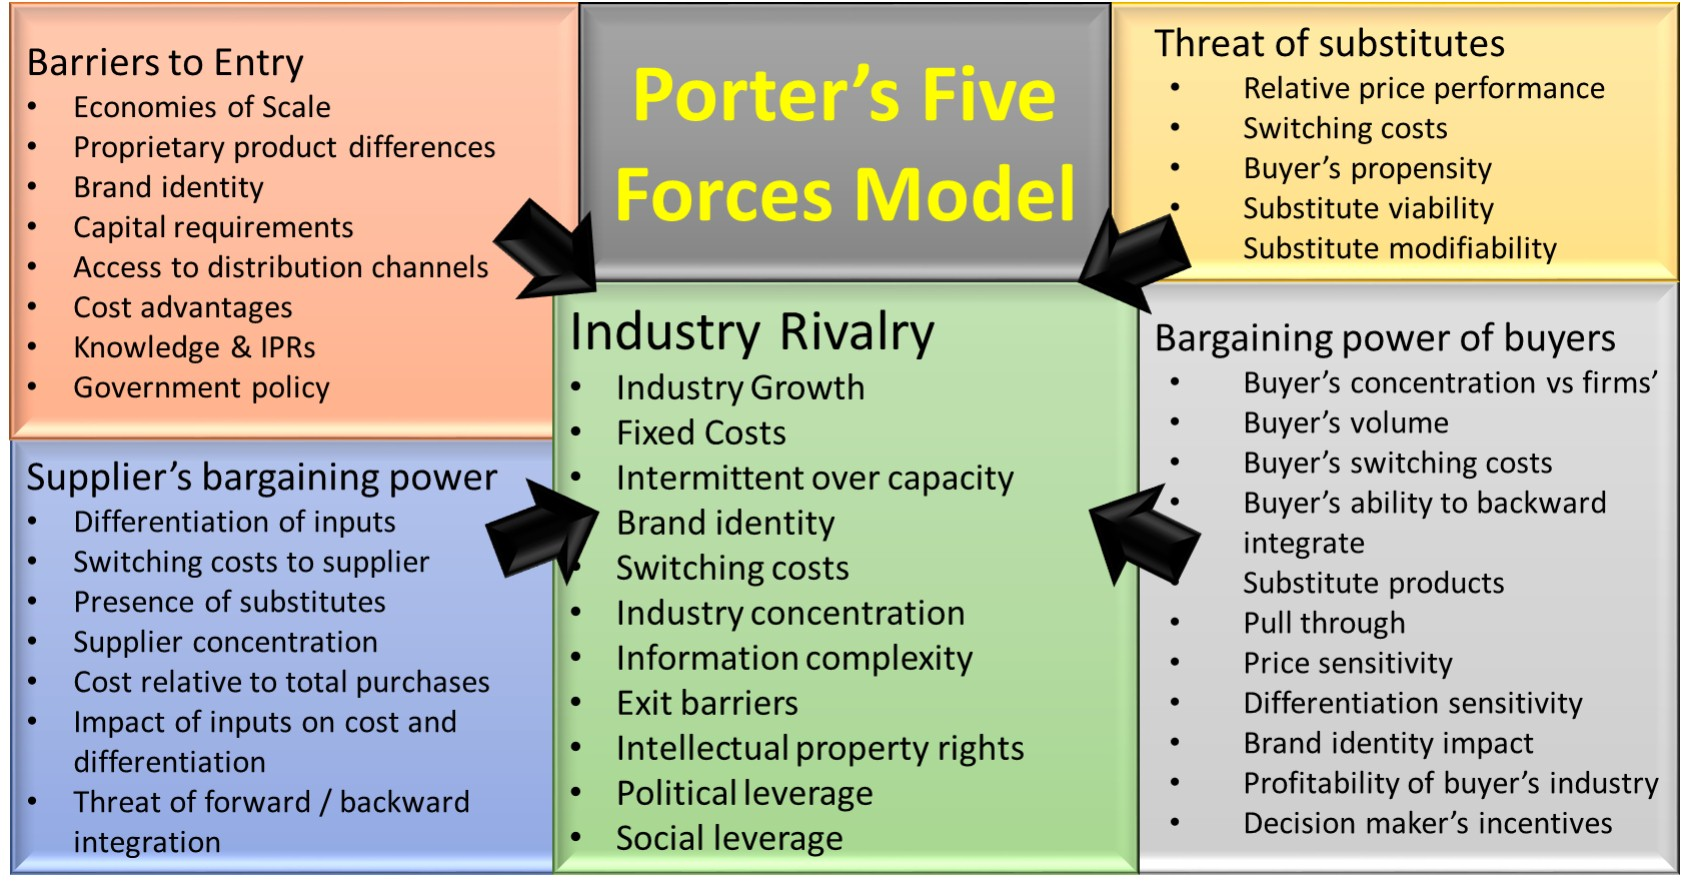 watch industry porter analysis Named for its creator michael porter,  based on other businesses in the industry  trefis has also completed porter's five forces analysis of companies,.